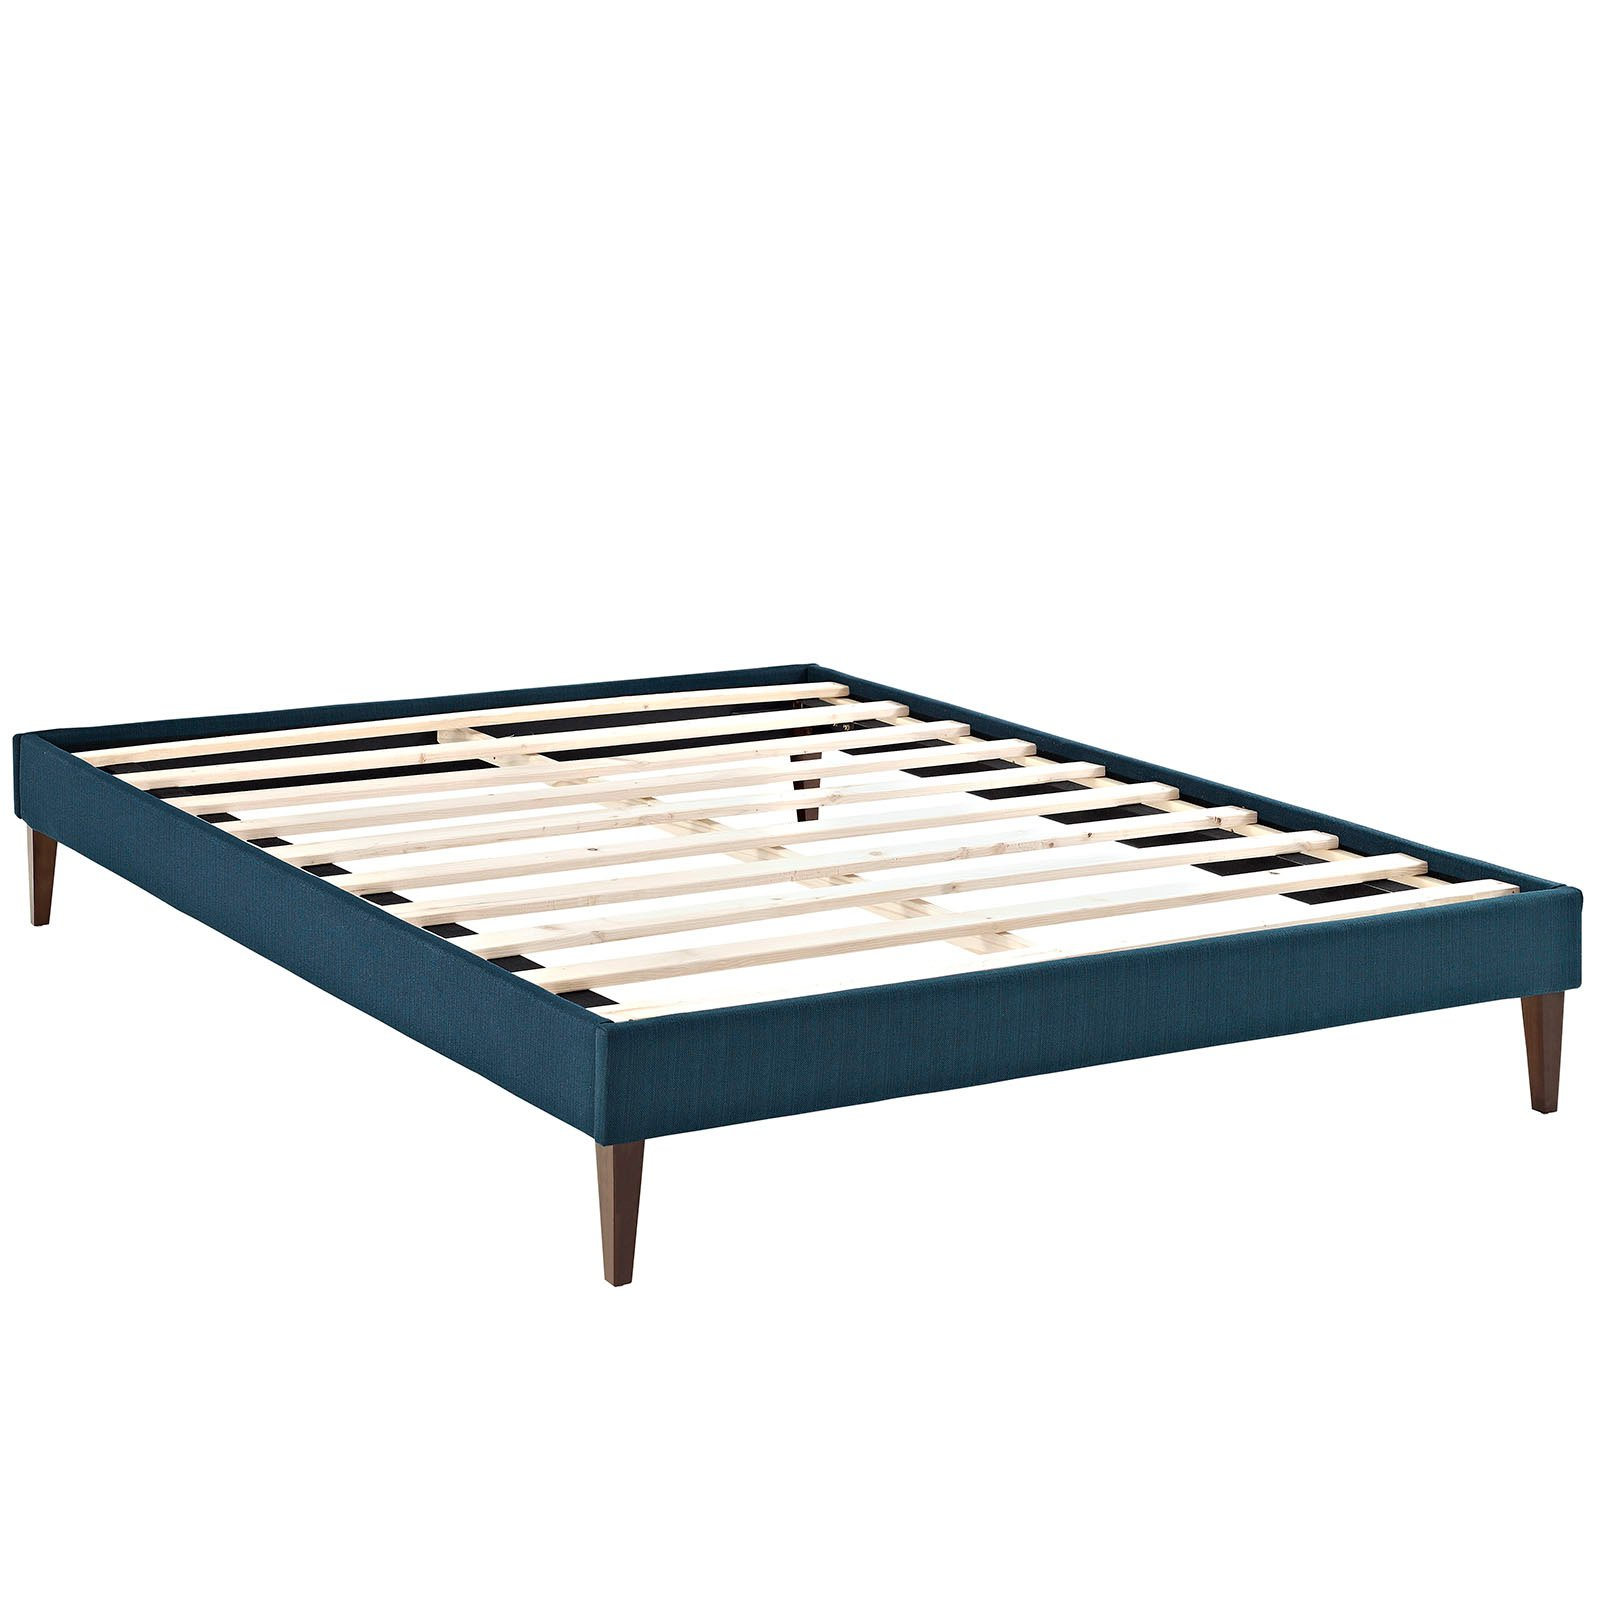 Modway Sharon Upholstered Bed Frame with Squared Tapered Legs, Multiple Sizes and Colors